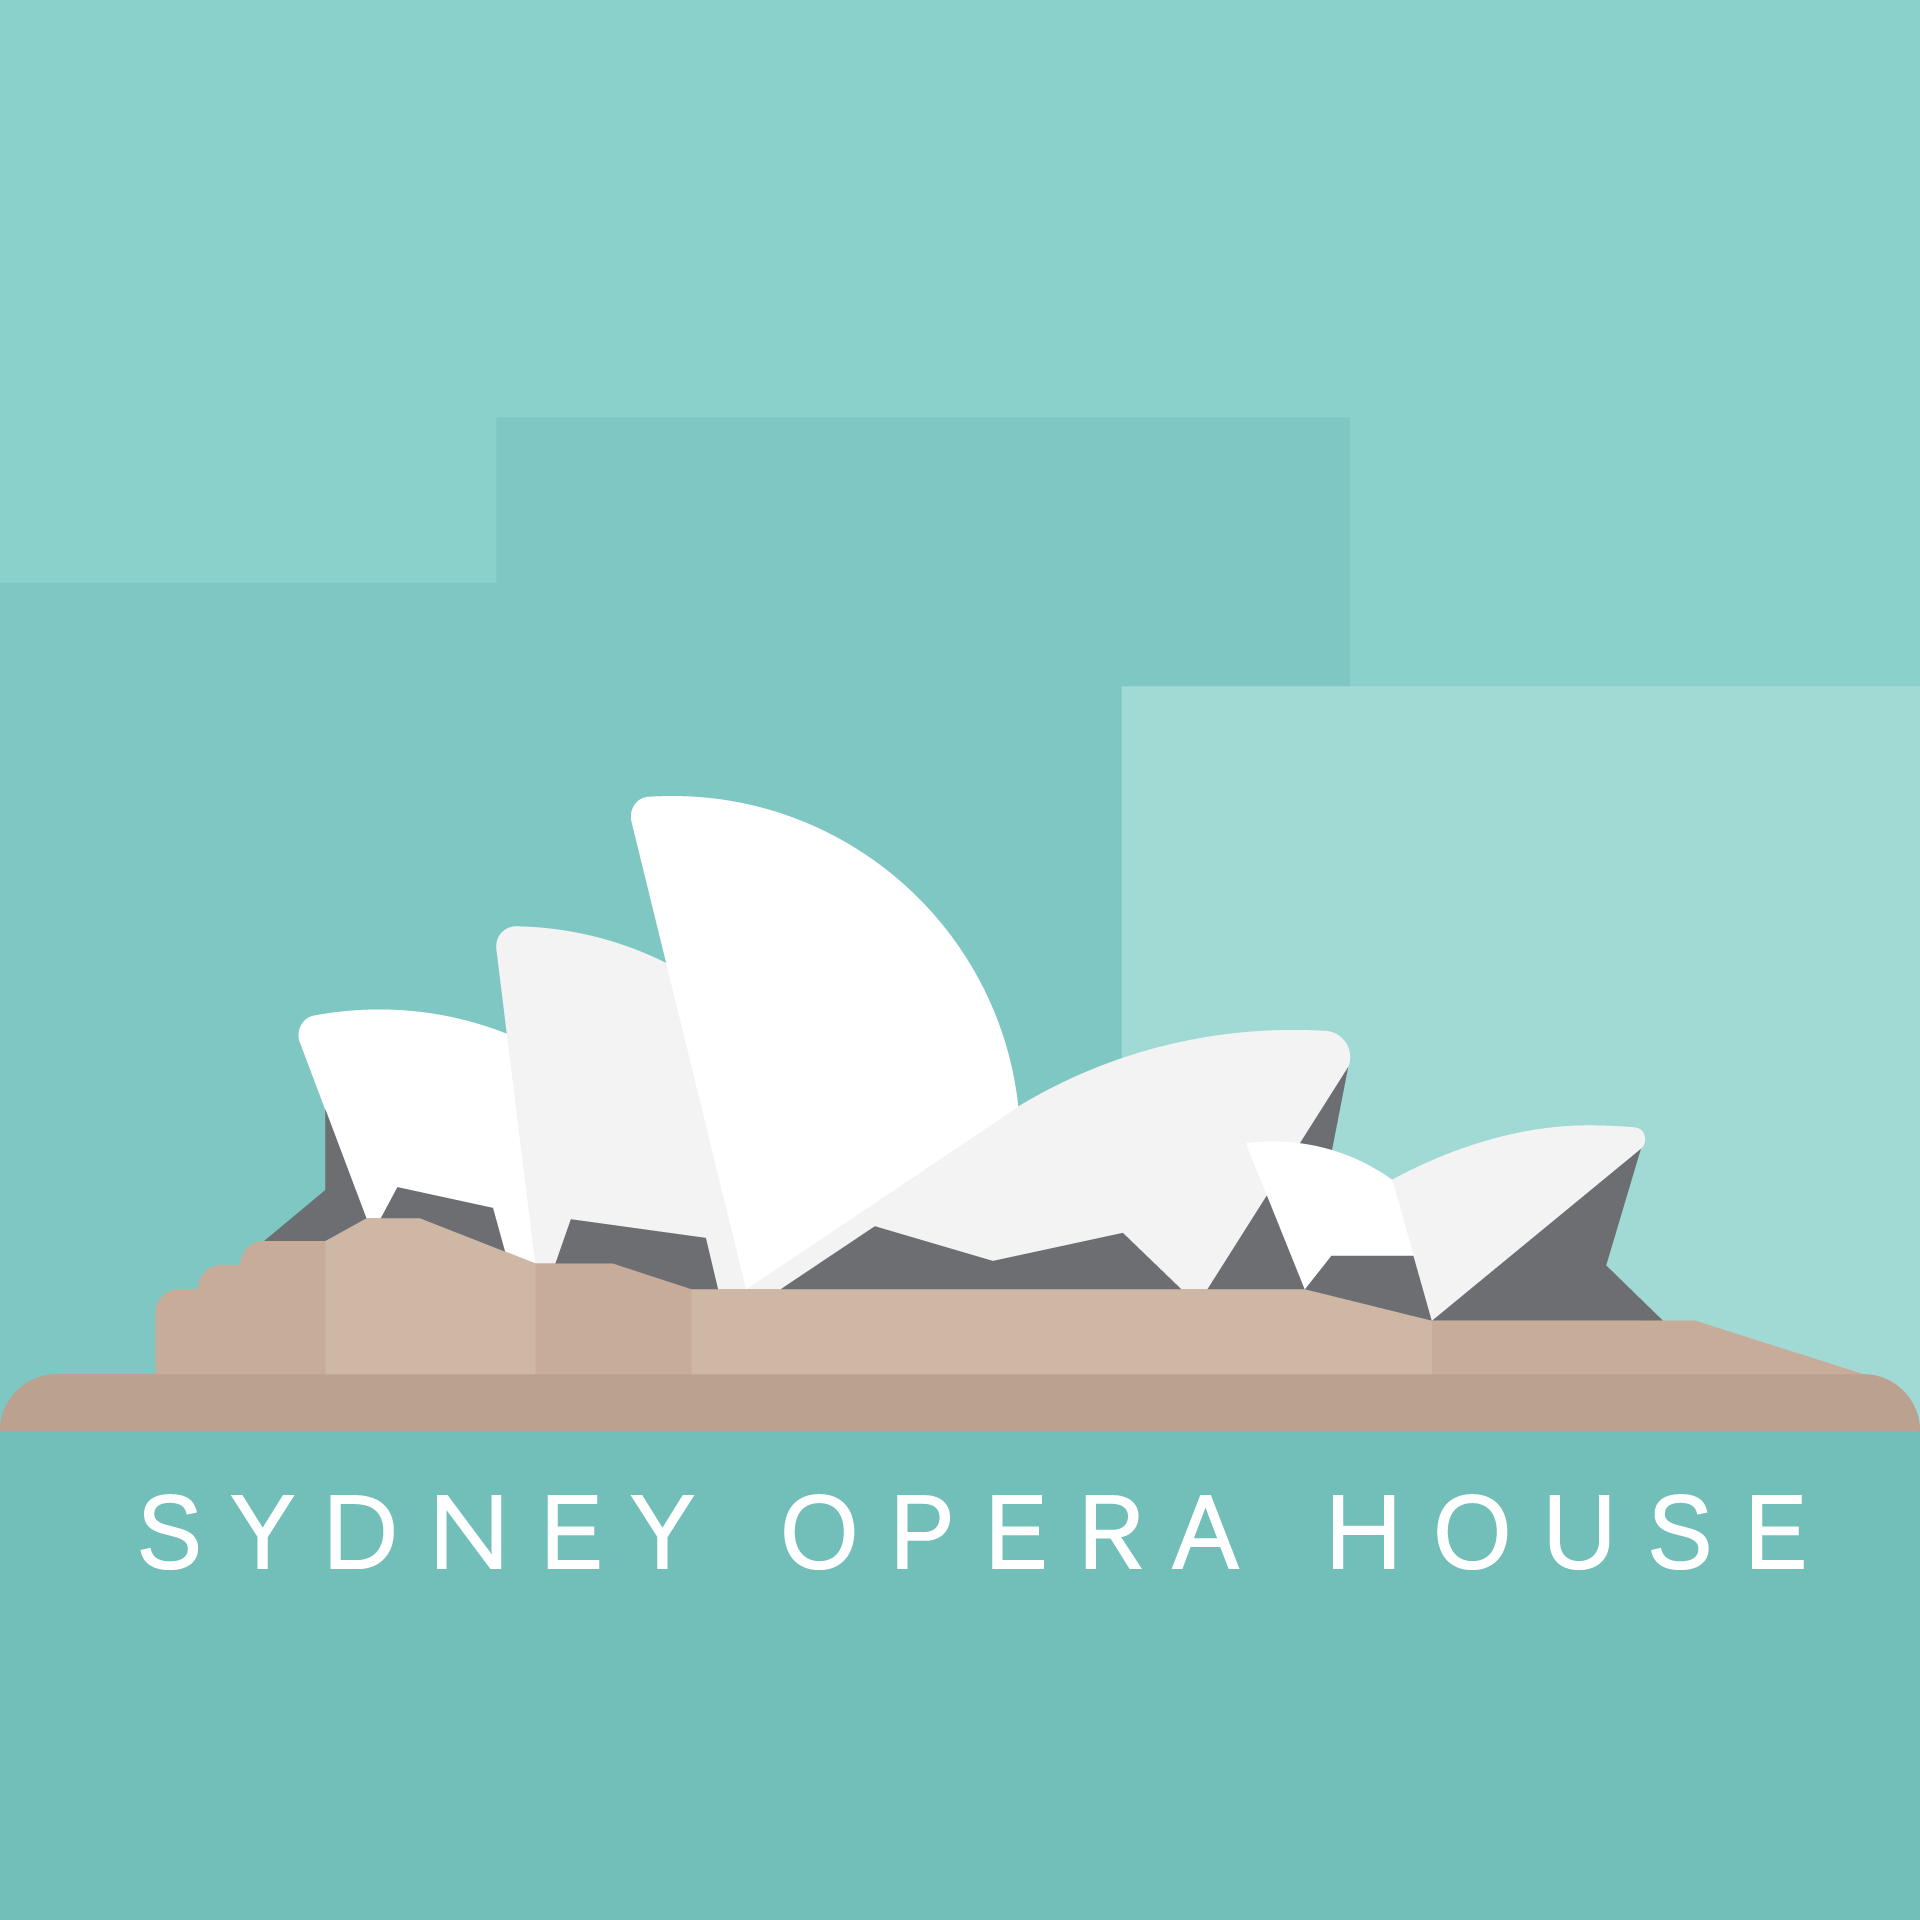 Cities - Sydney | Sydney Opera House illustration by Cans.